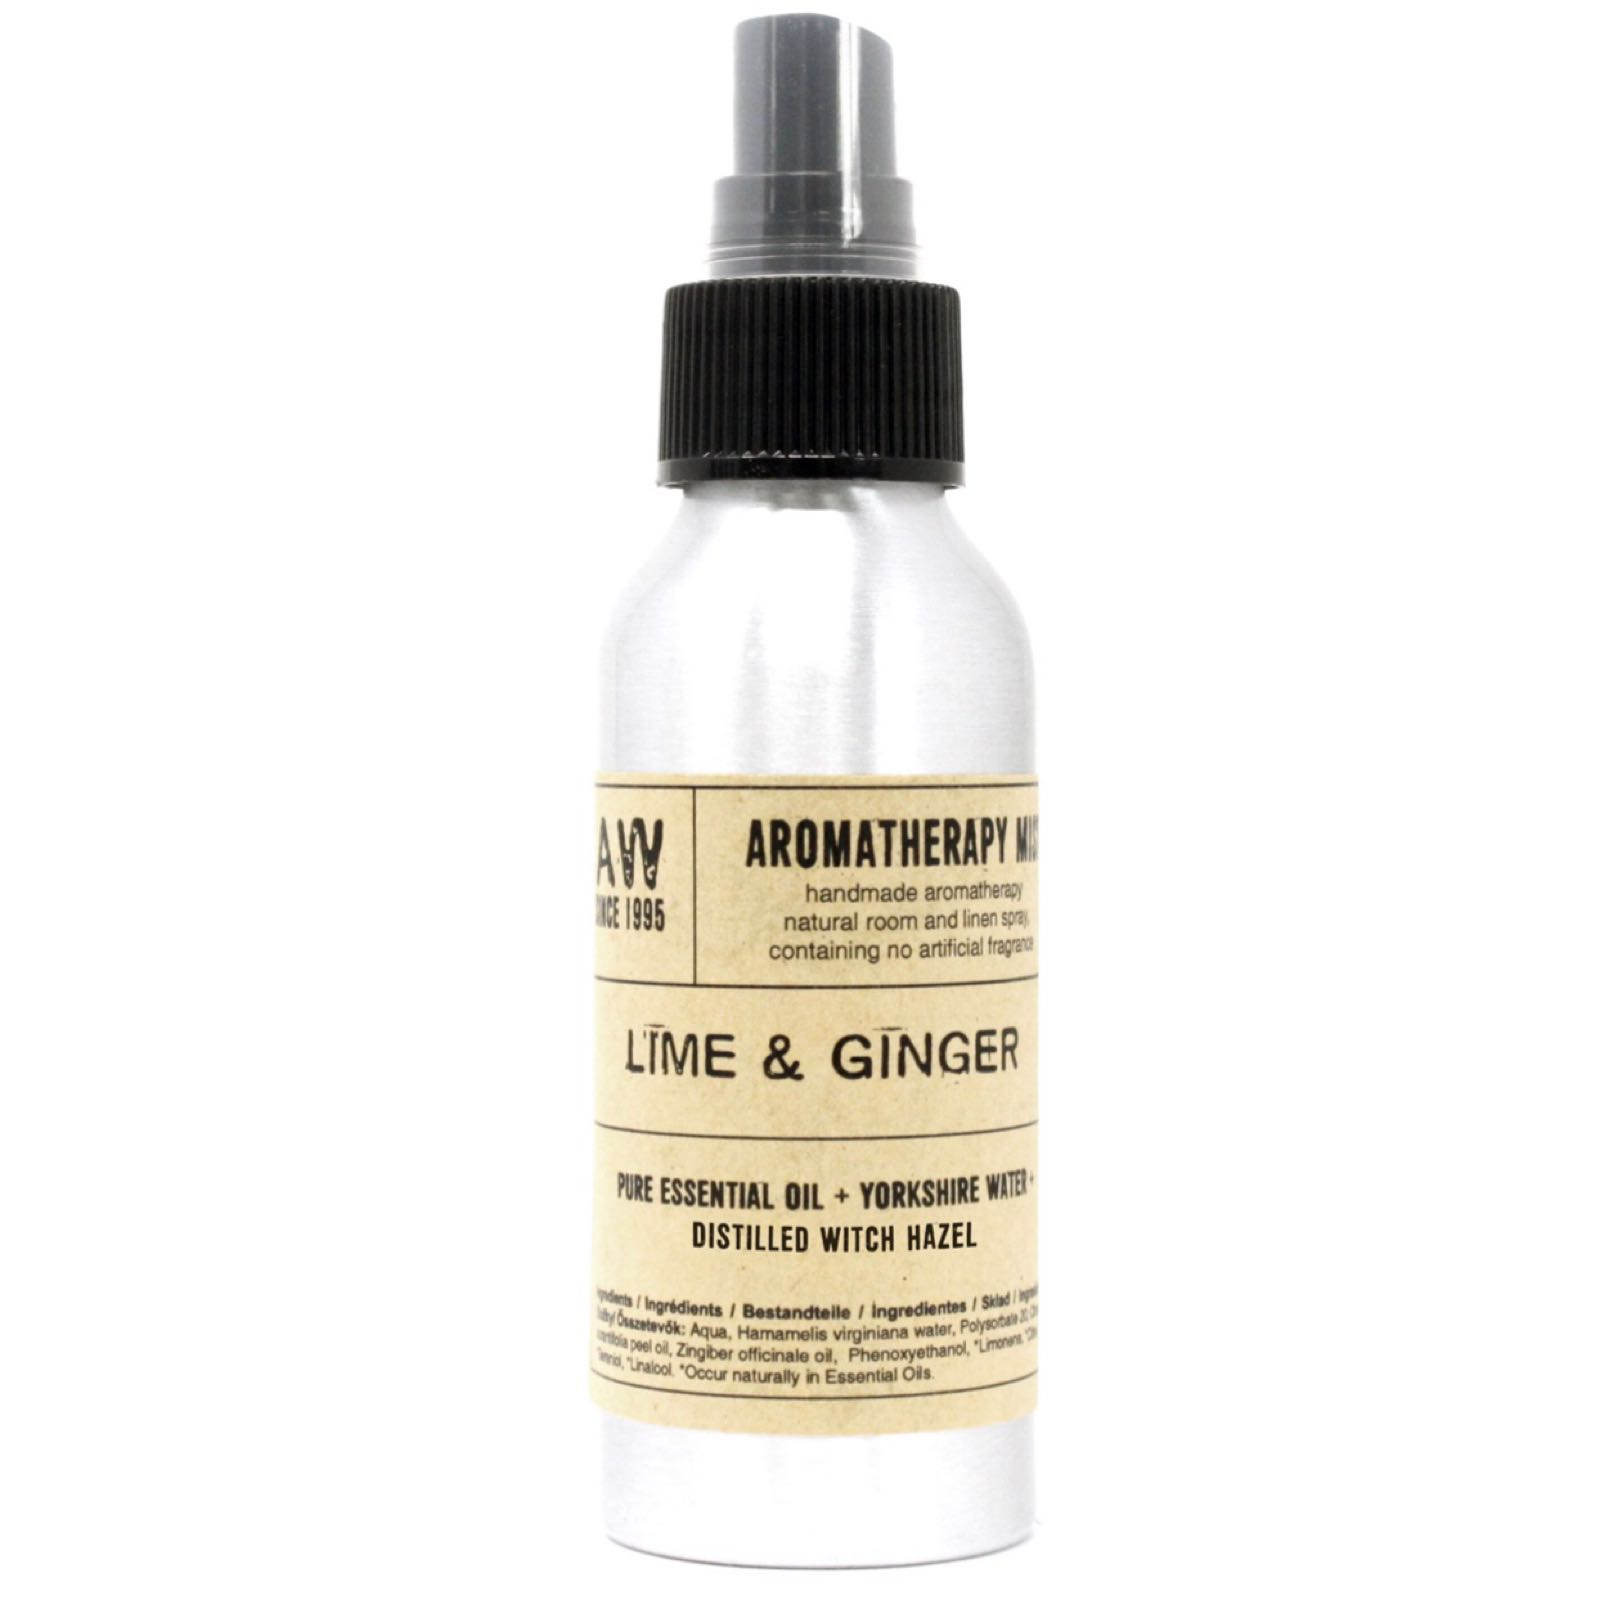 Lime & Ginger Aromatherapy Mist